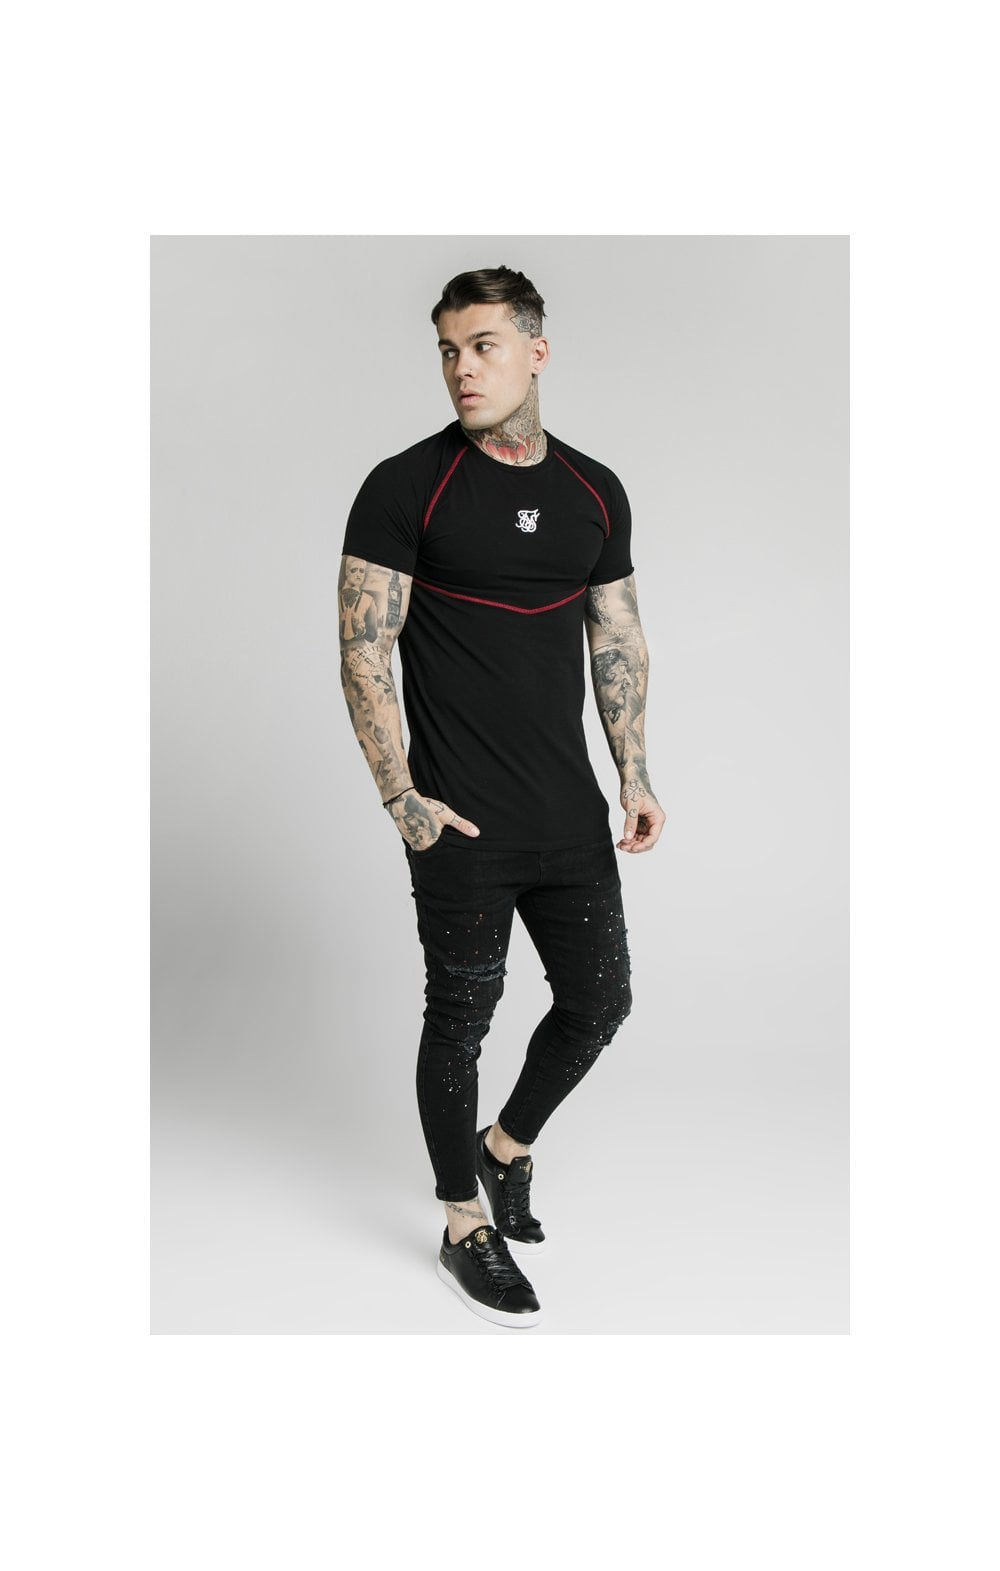 SikSilk Cover Stitch Raglan Gym Tee - Black & Red (5)